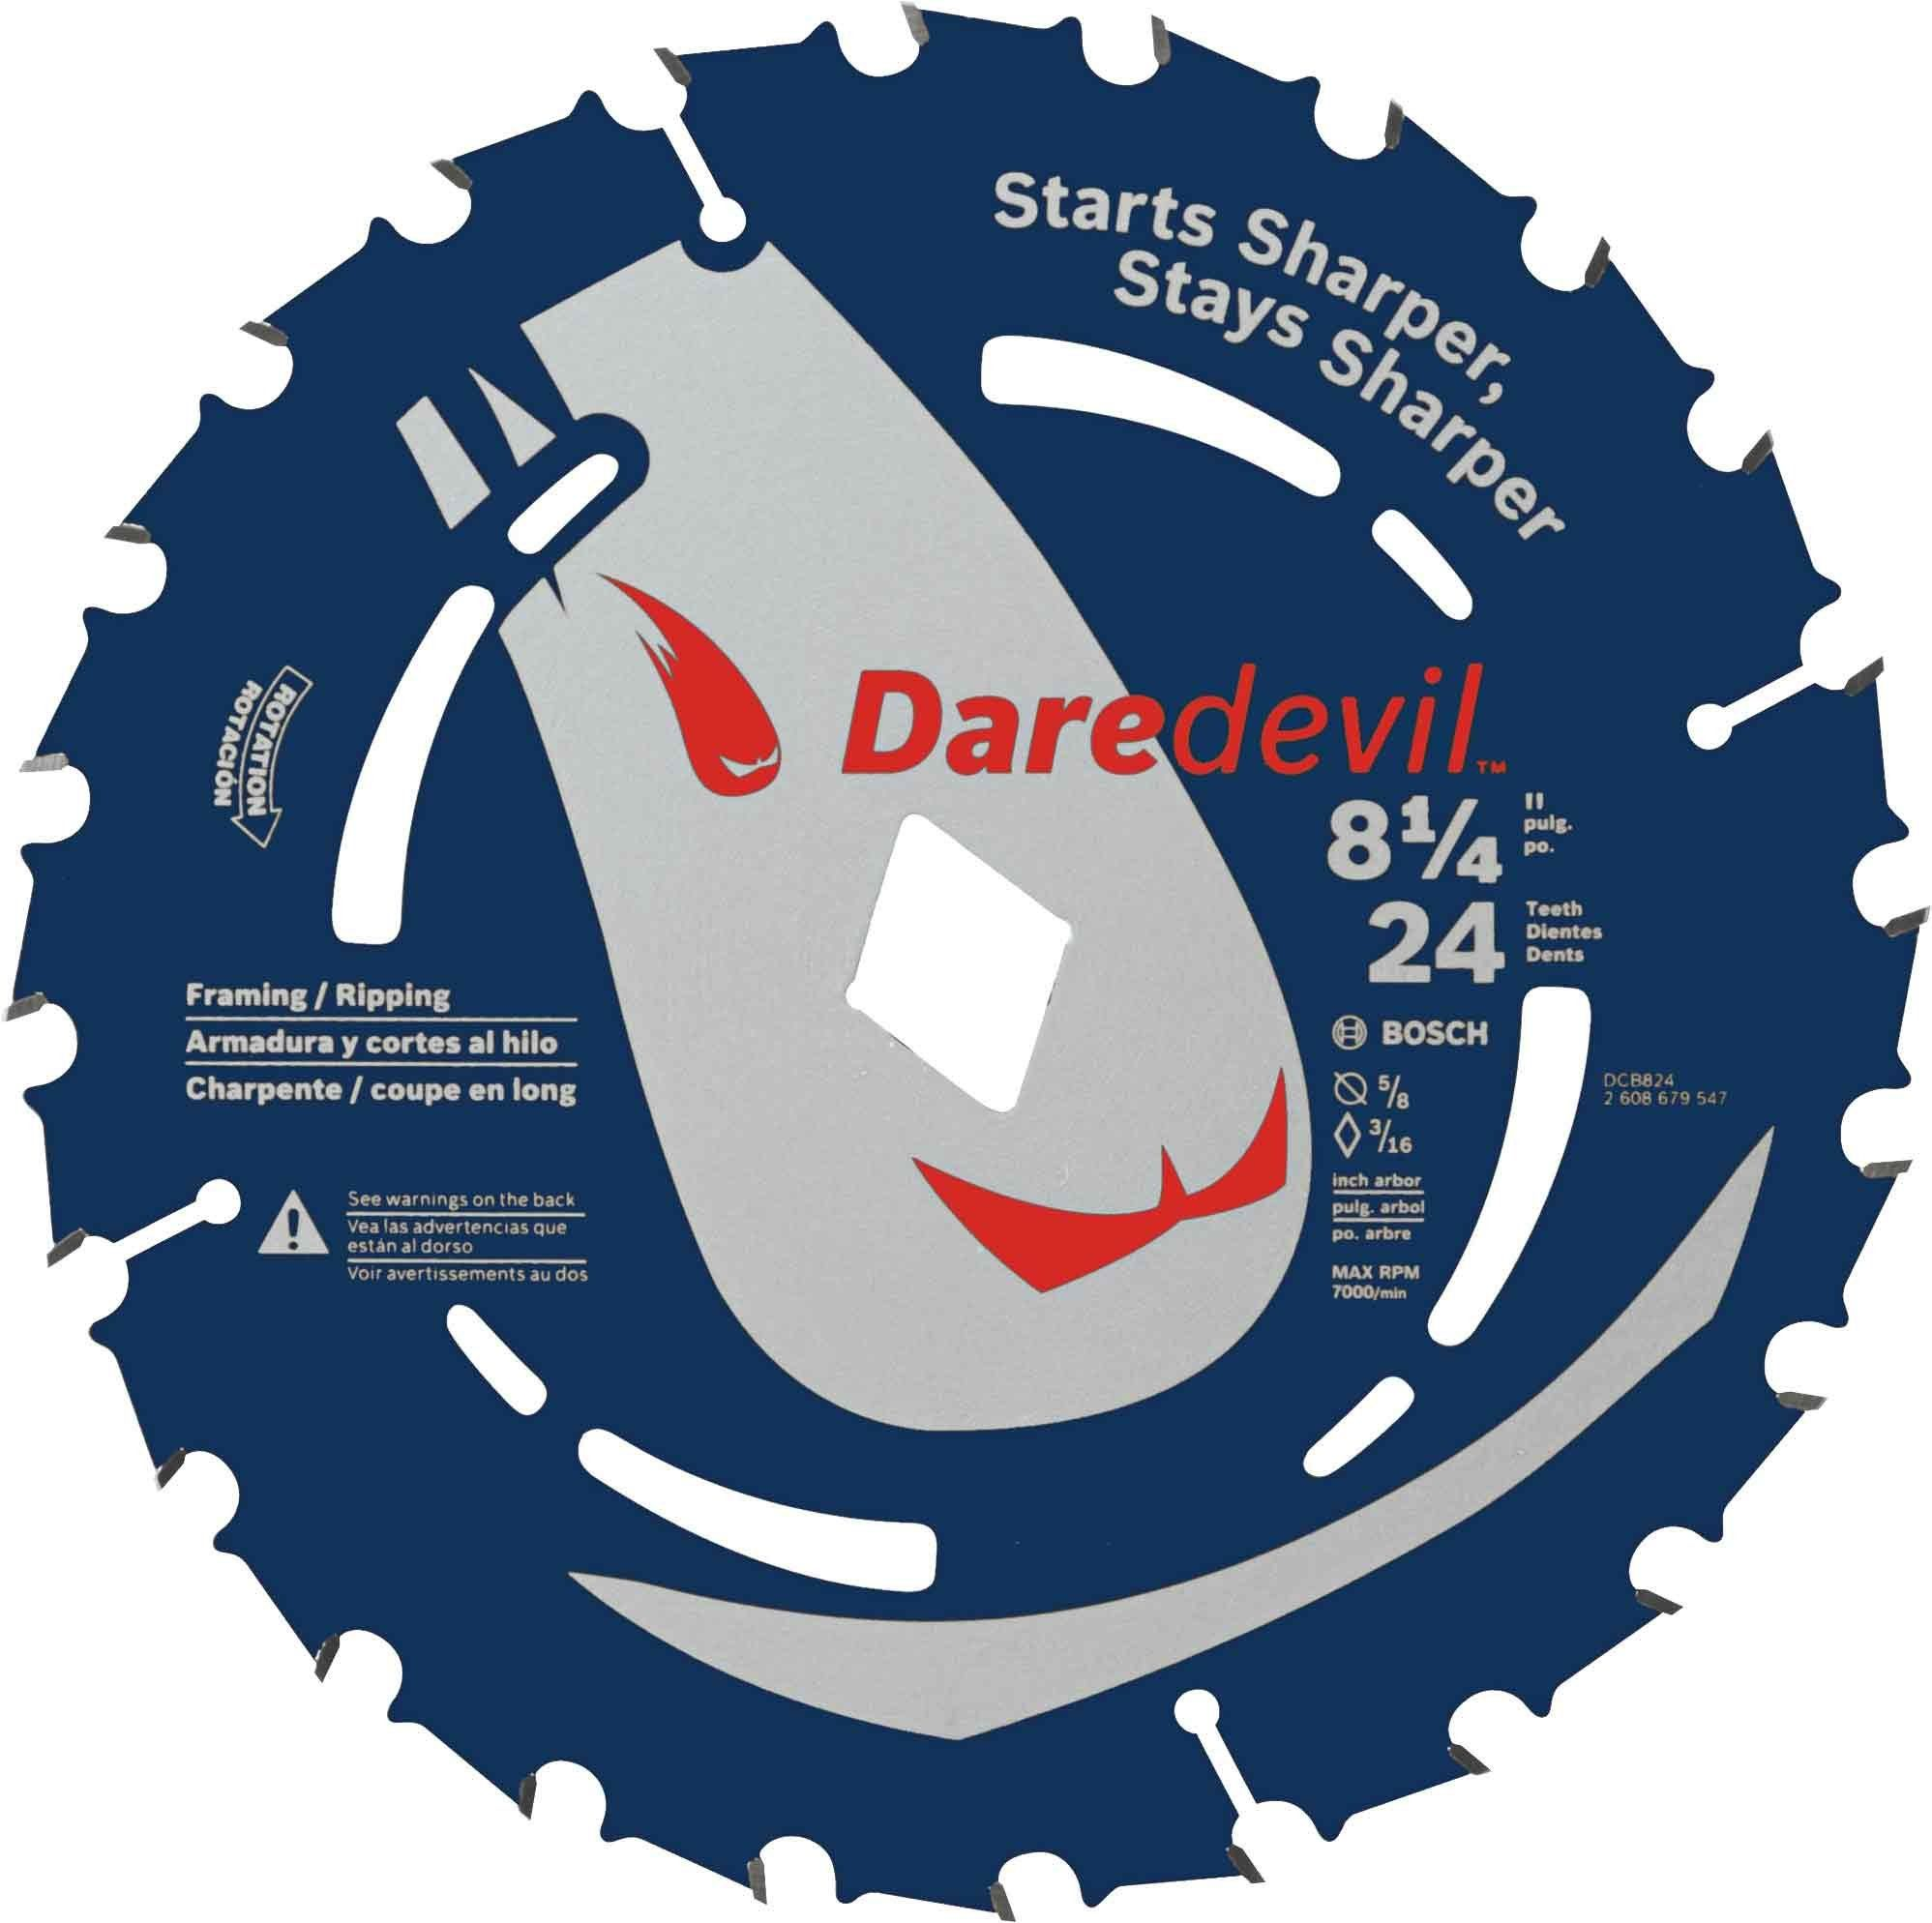 Bosch Dcb824 81 4 In 24 Tooth Daredevil Portable Saw Blade Framing Have A Look At The Image By Seeing The Web Link Circular Saw Blades Saw Blade Table Saw